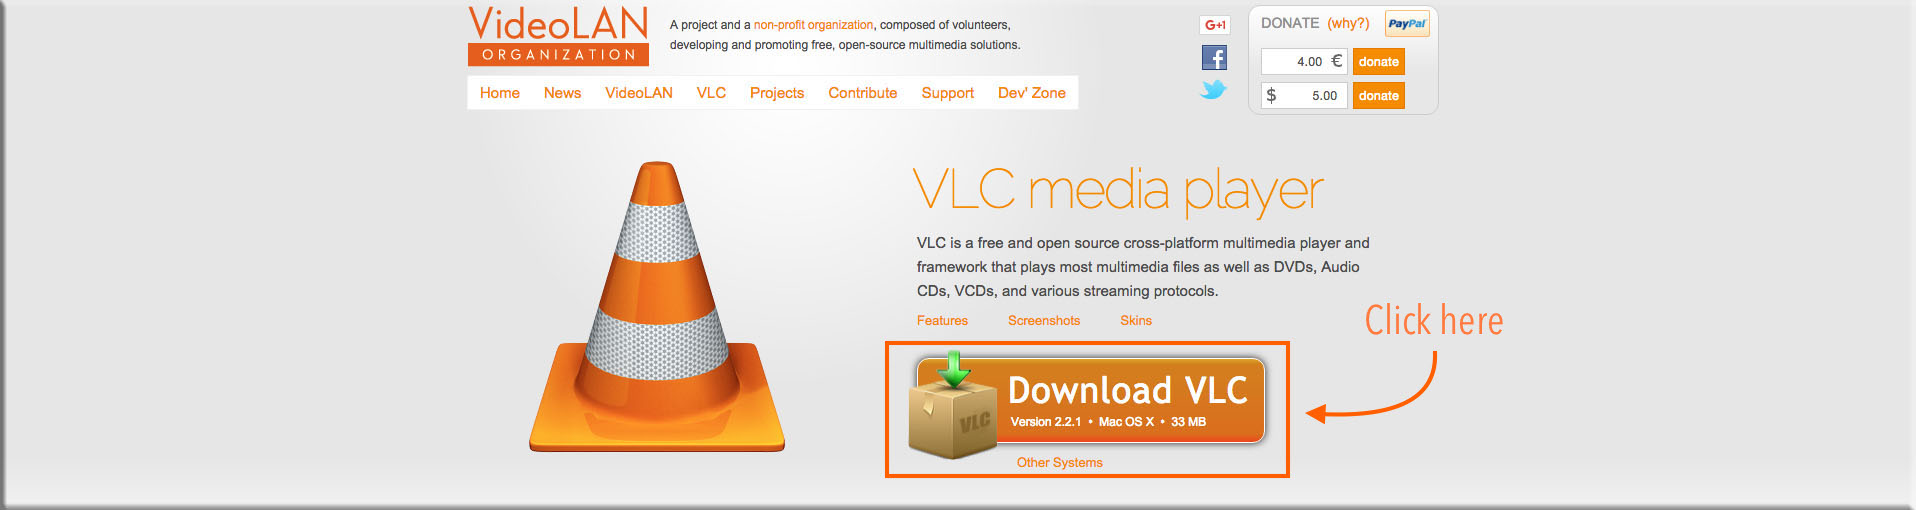 vlc download.jpg